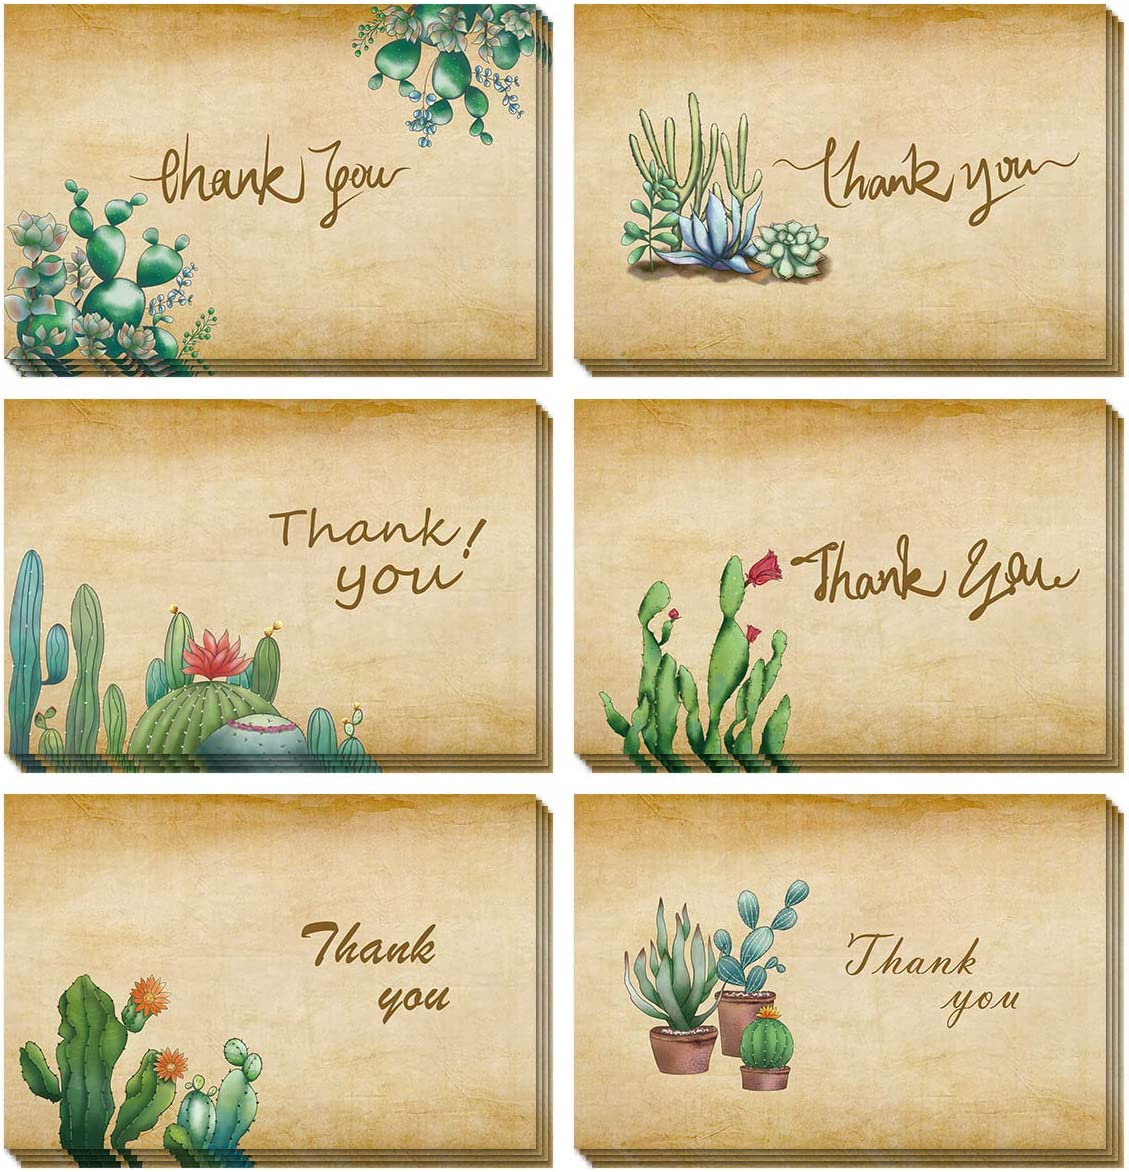 PaperKiddo 48 Thank You Cards with Envelops Thank You Stickers 6 Designs Cactus Thank You Notes Blank Card Bulk for Wedding Business Baby Shower Bridal Shower Graduation Sympathy Engagement 8X6""